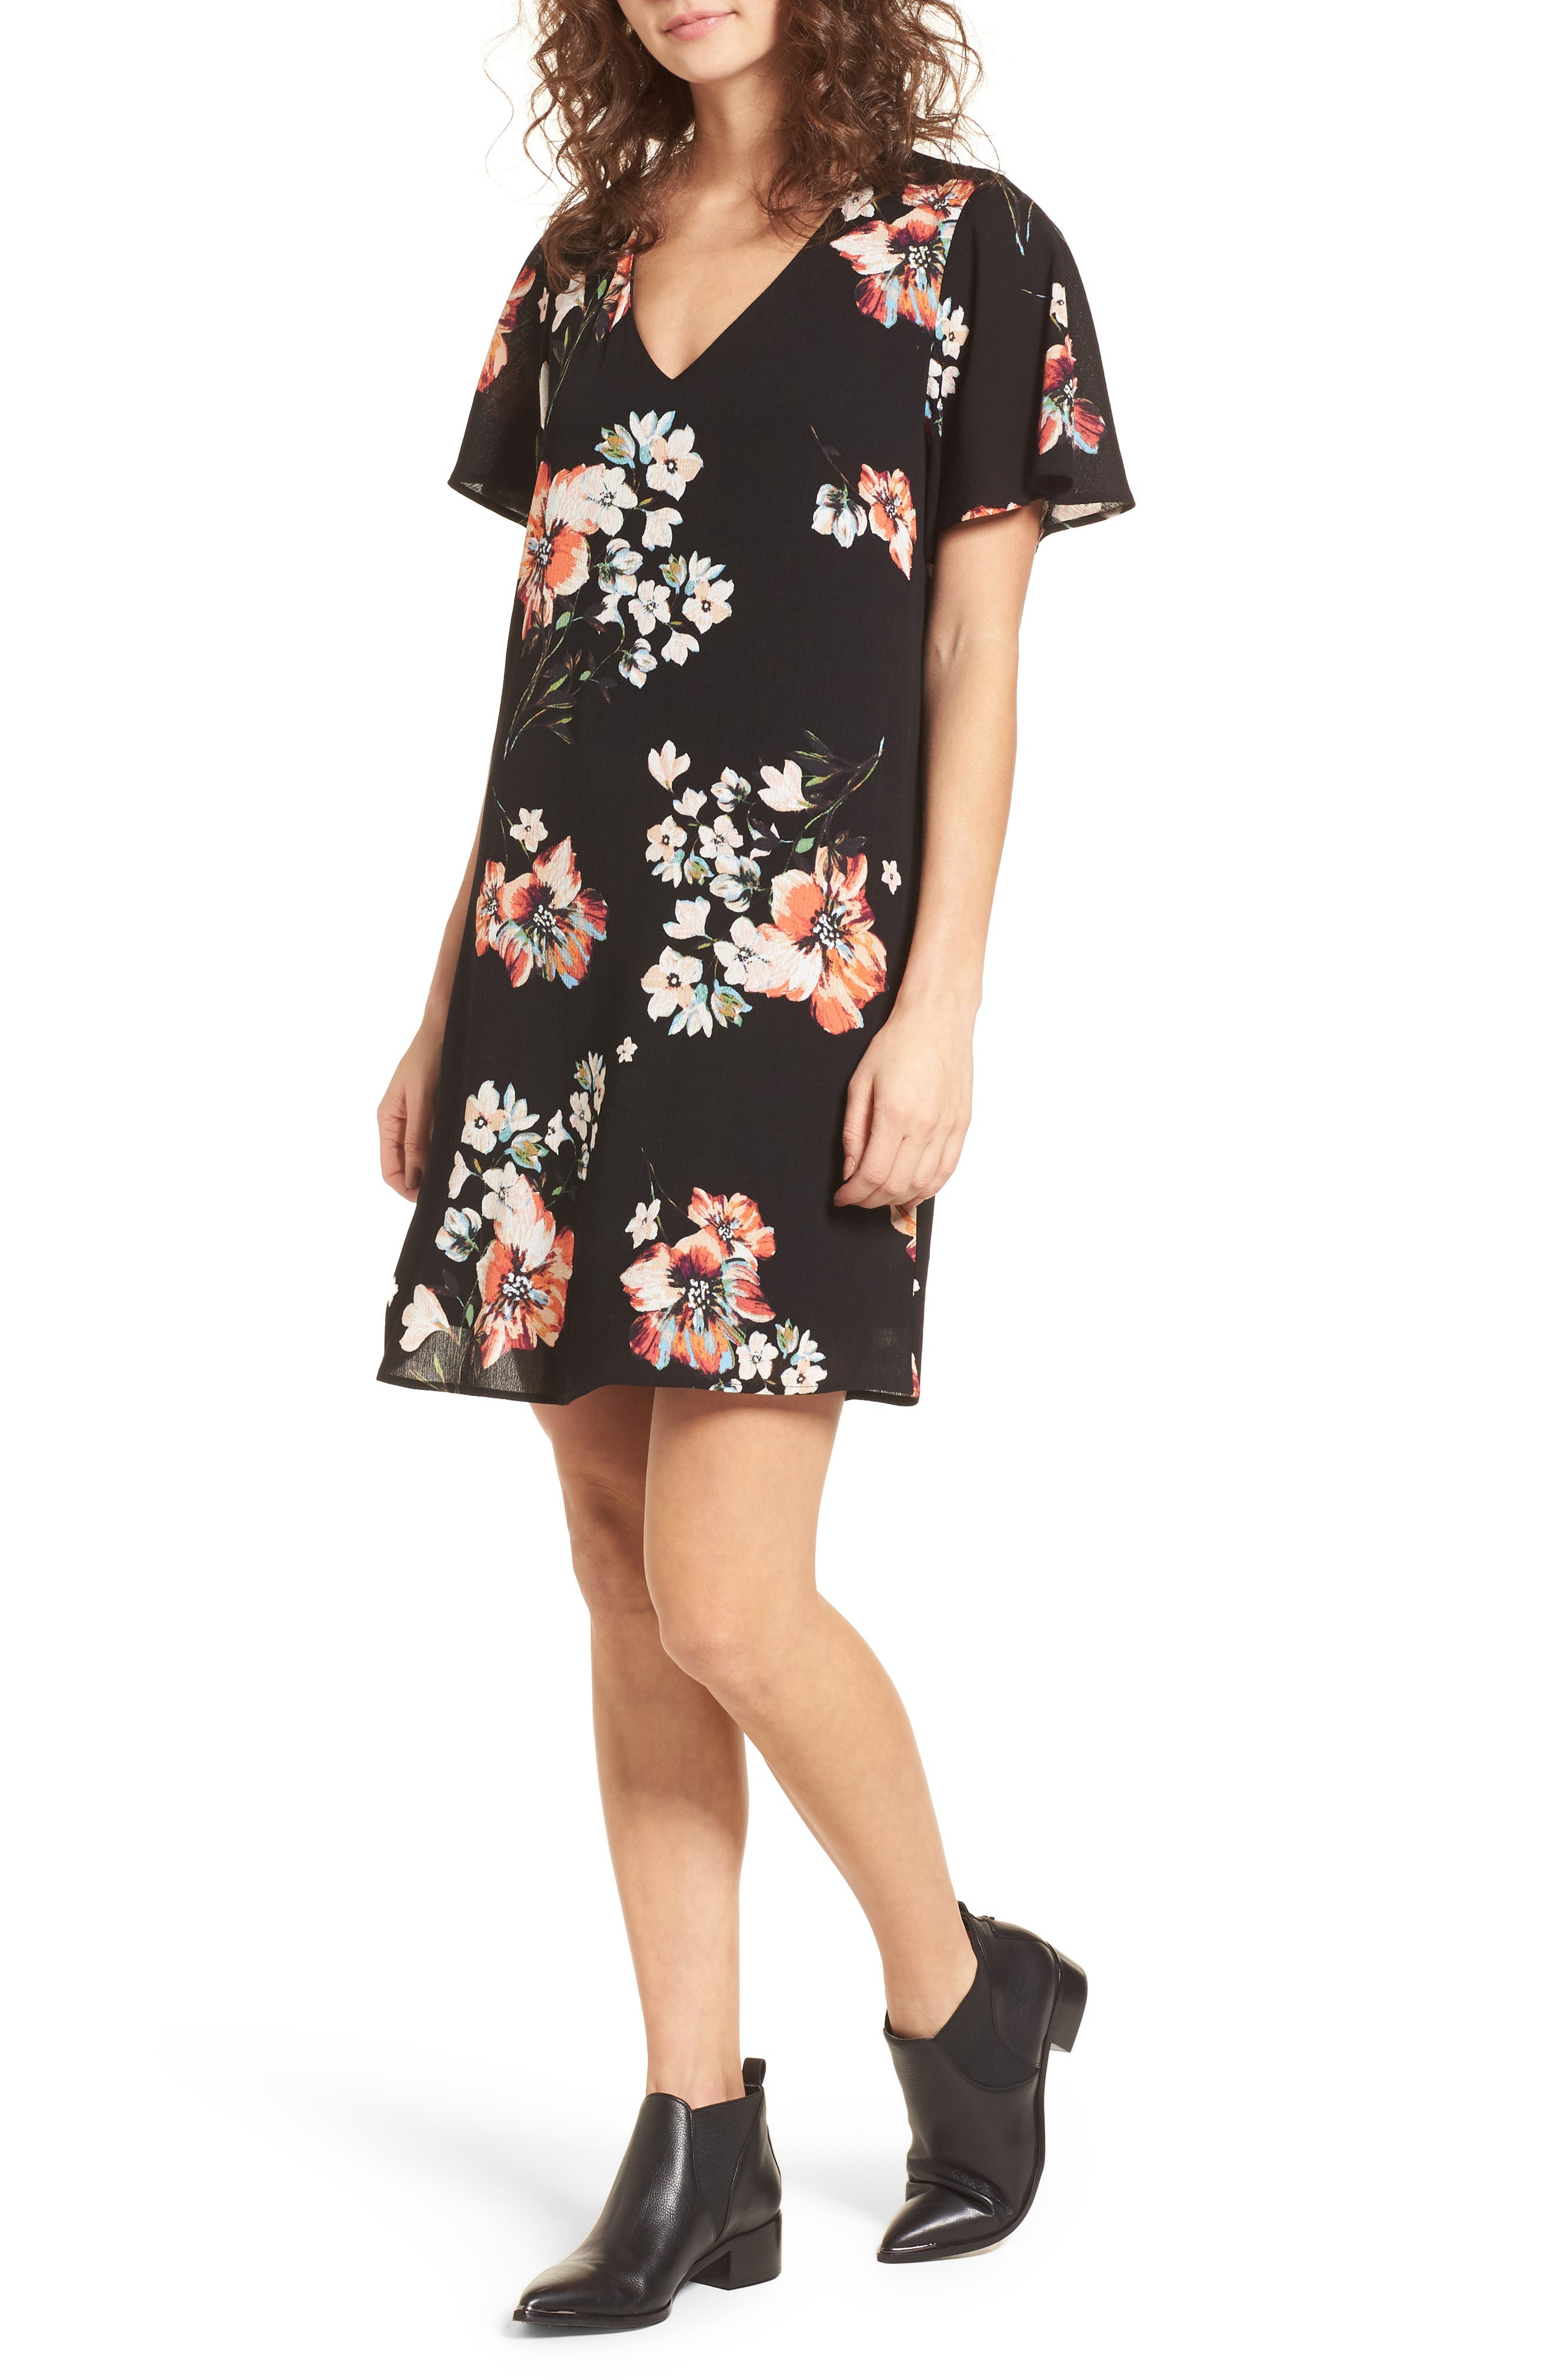 One Clothing Floral Shift Dress